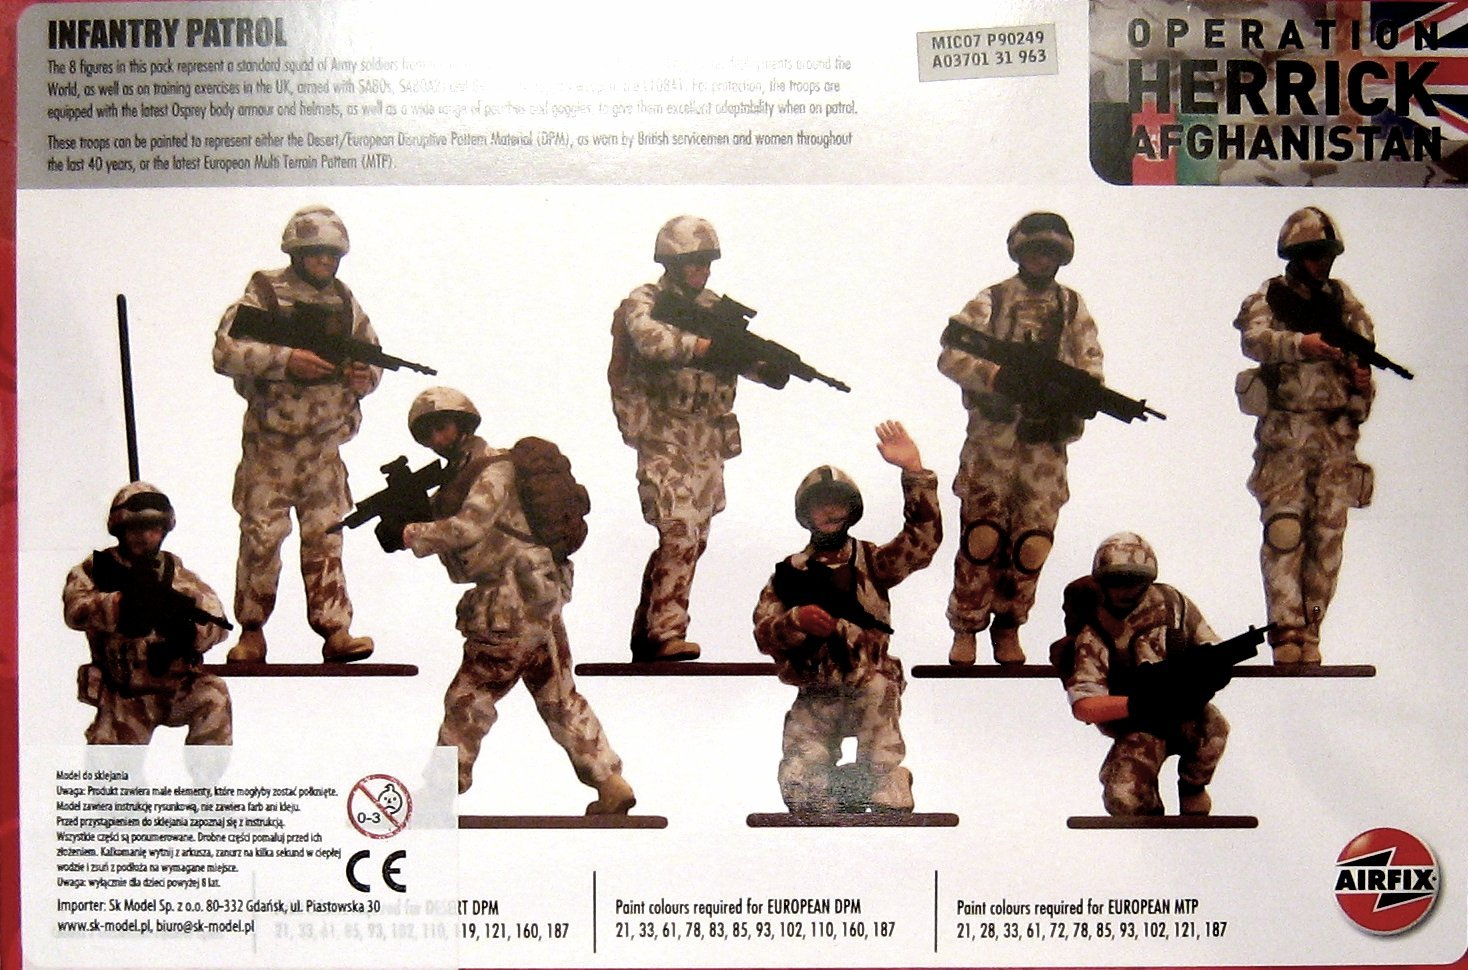 rc 1 12 scale with British Army Troops Afghanistan on Opel Blitz 3t Flak 38 Afr Korps as well Madisonsgirlswithbraces tumblr also British Army Troops Afghanistan further Build The Ford Mustang Shelby Model in addition Kawasaki Z 1 Rcm 261 By Sanctuary Tokyo.